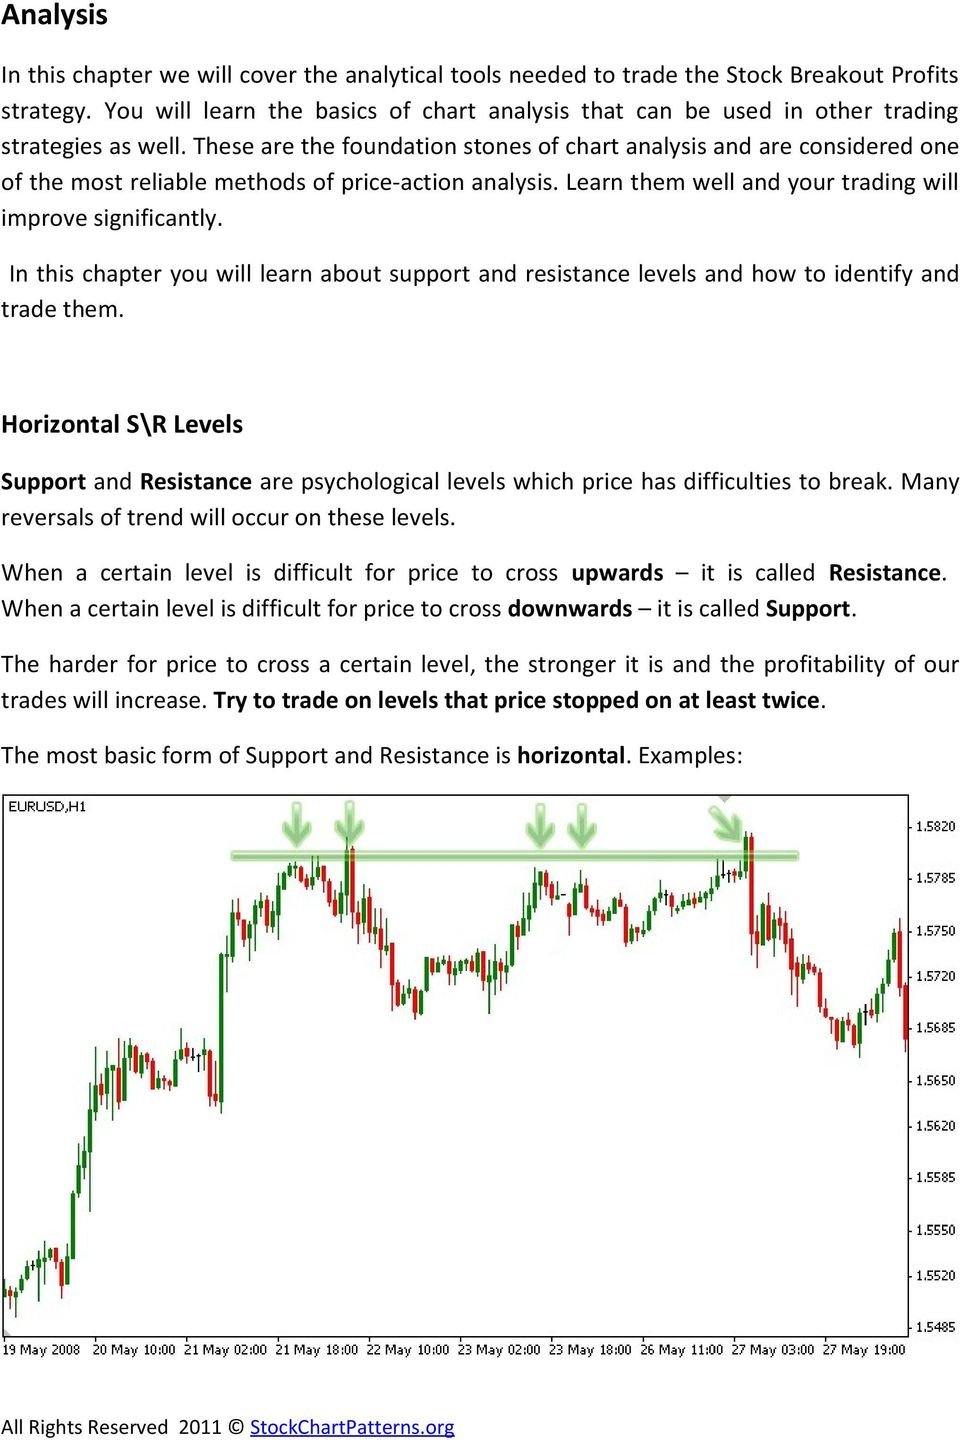 These are the foundation stones of chart analysis and are considered one of the most reliable methods of price-action analysis. Learn them well and your trading will improve significantly.